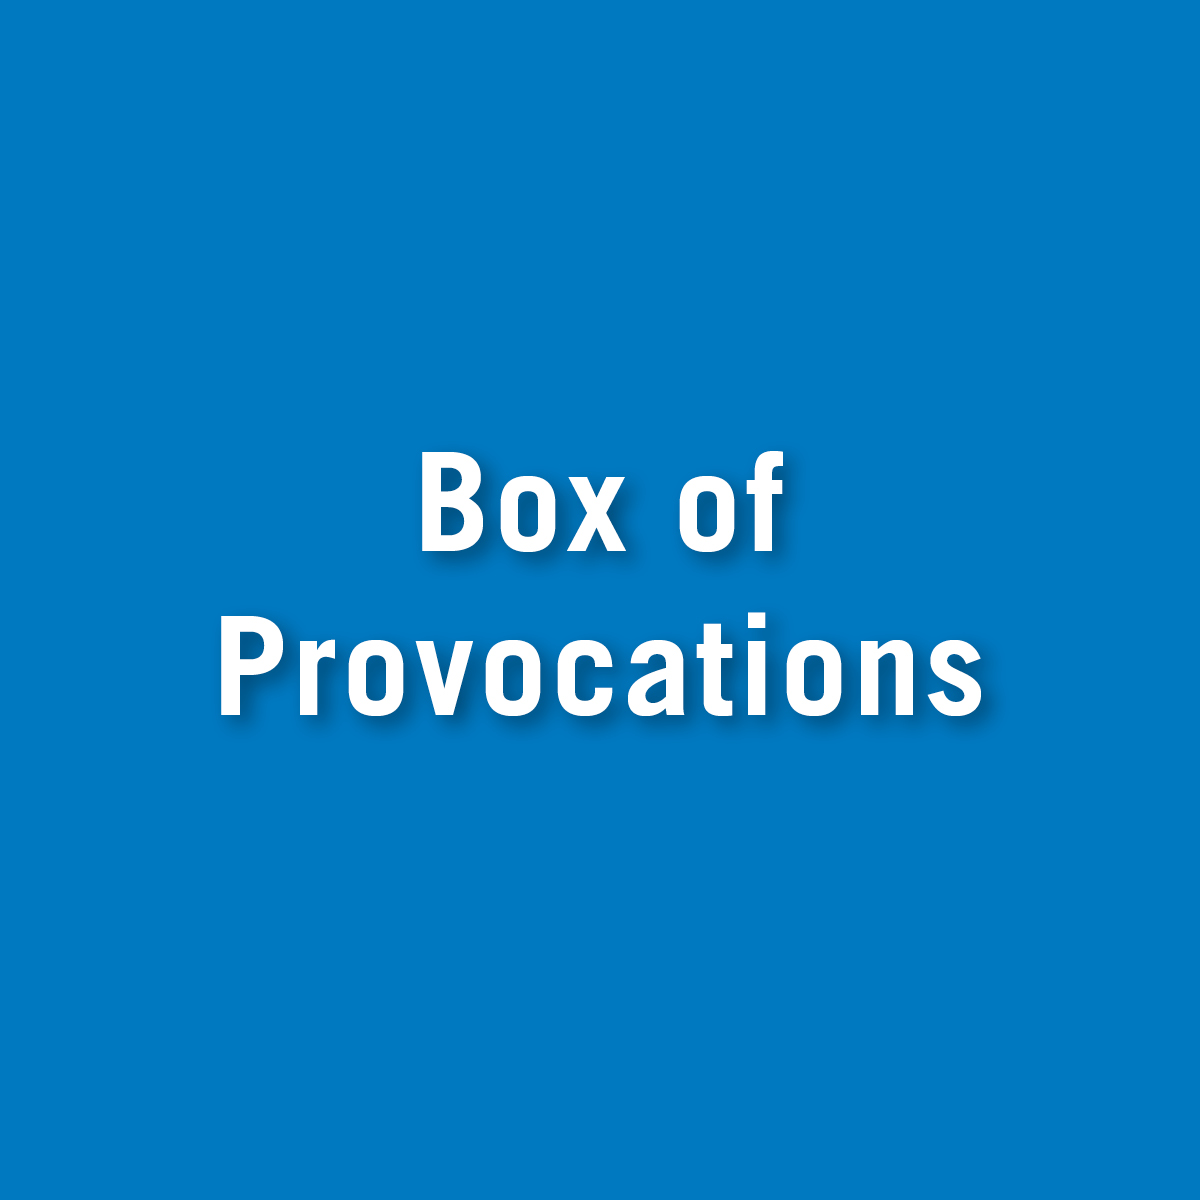 Box of Provocations